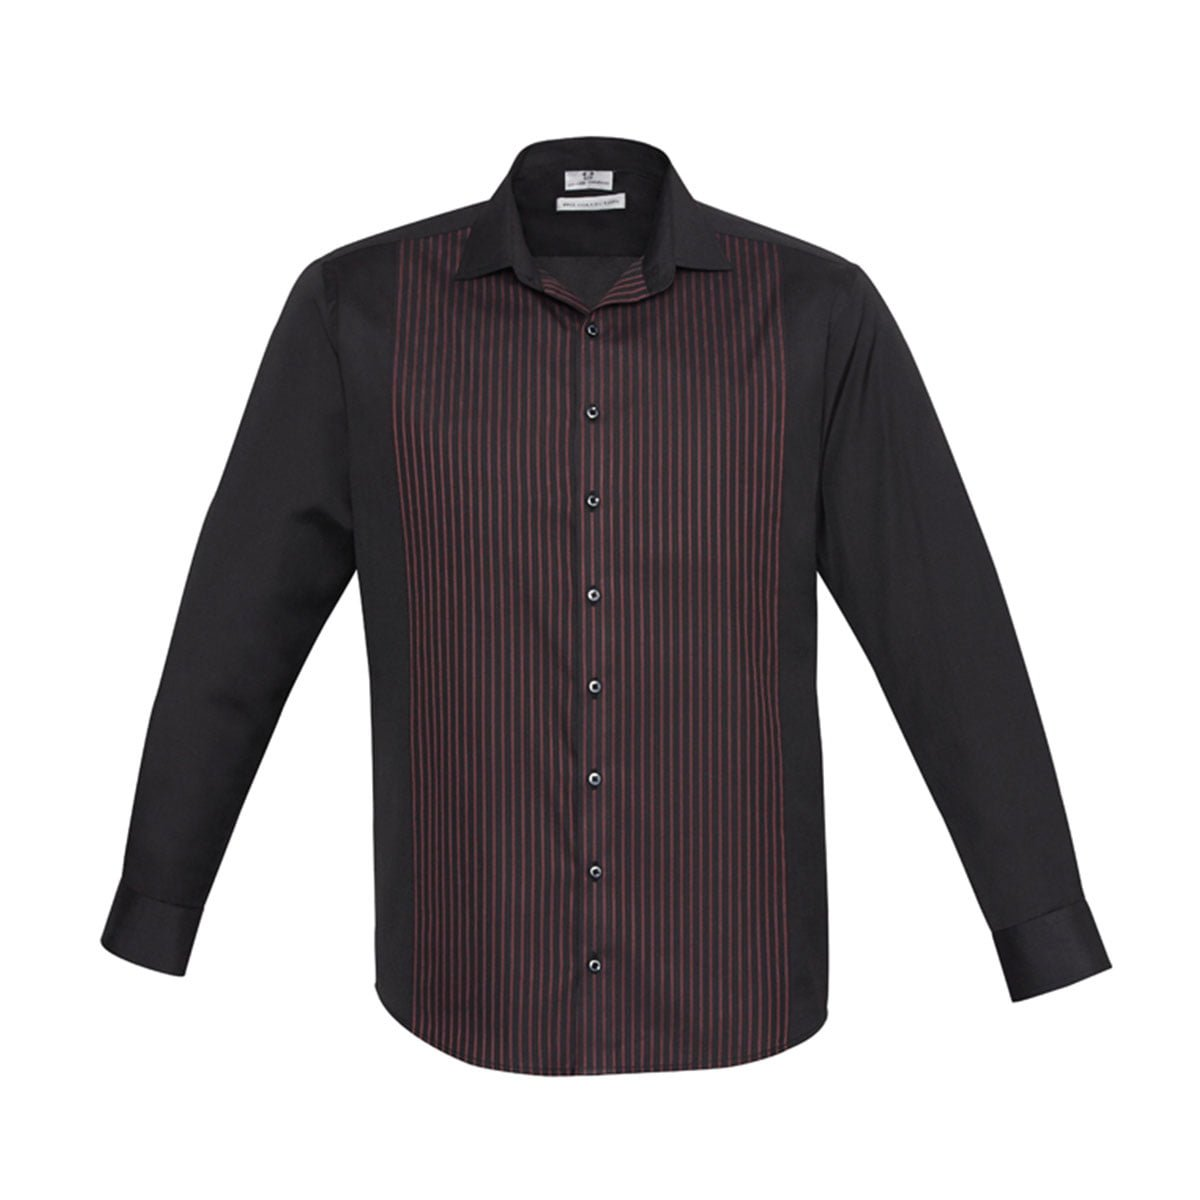 Mens Reno Panel Long Sleeve Shirt-Black / Port Wine